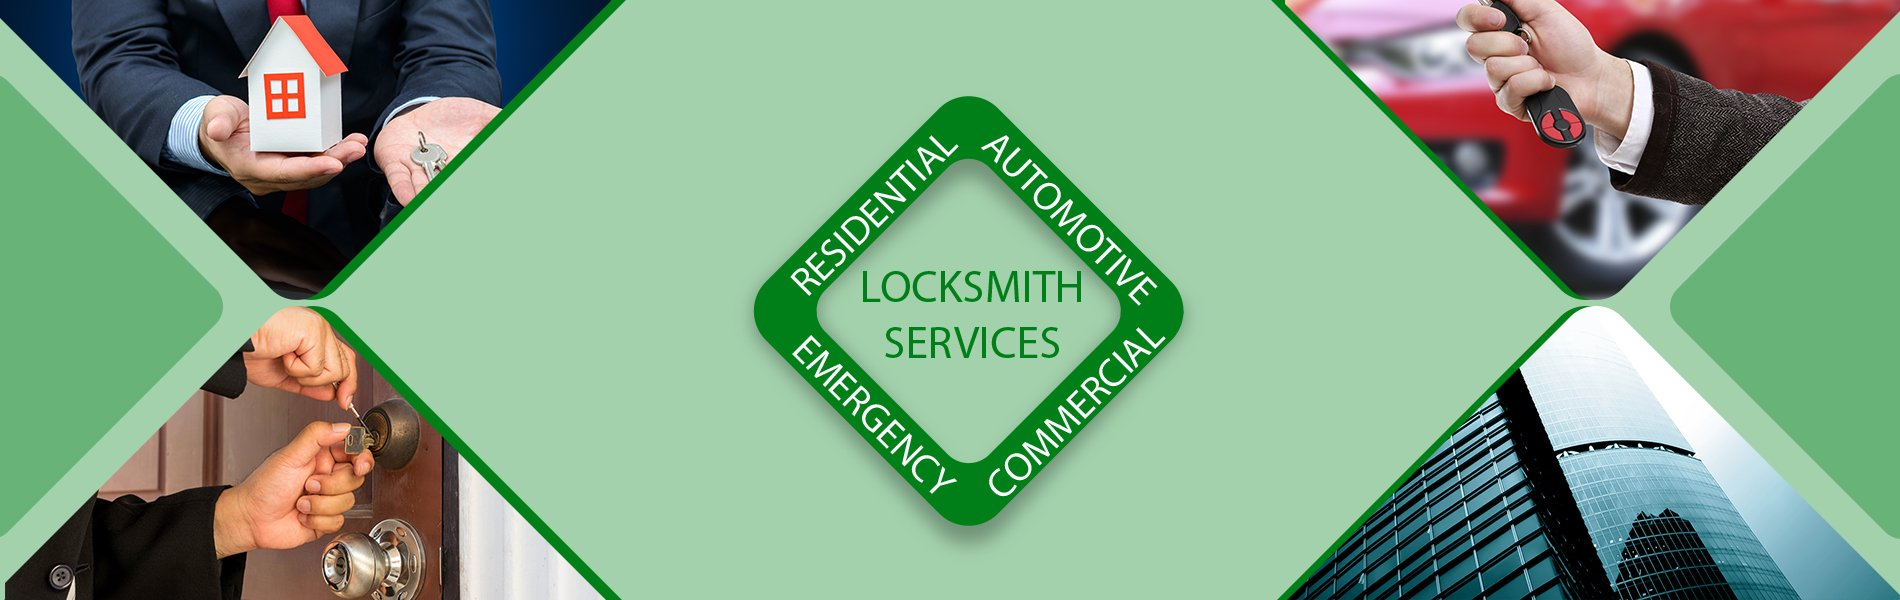 Falls Church VA Locksmith Store Falls Church, VA 703-436-6219